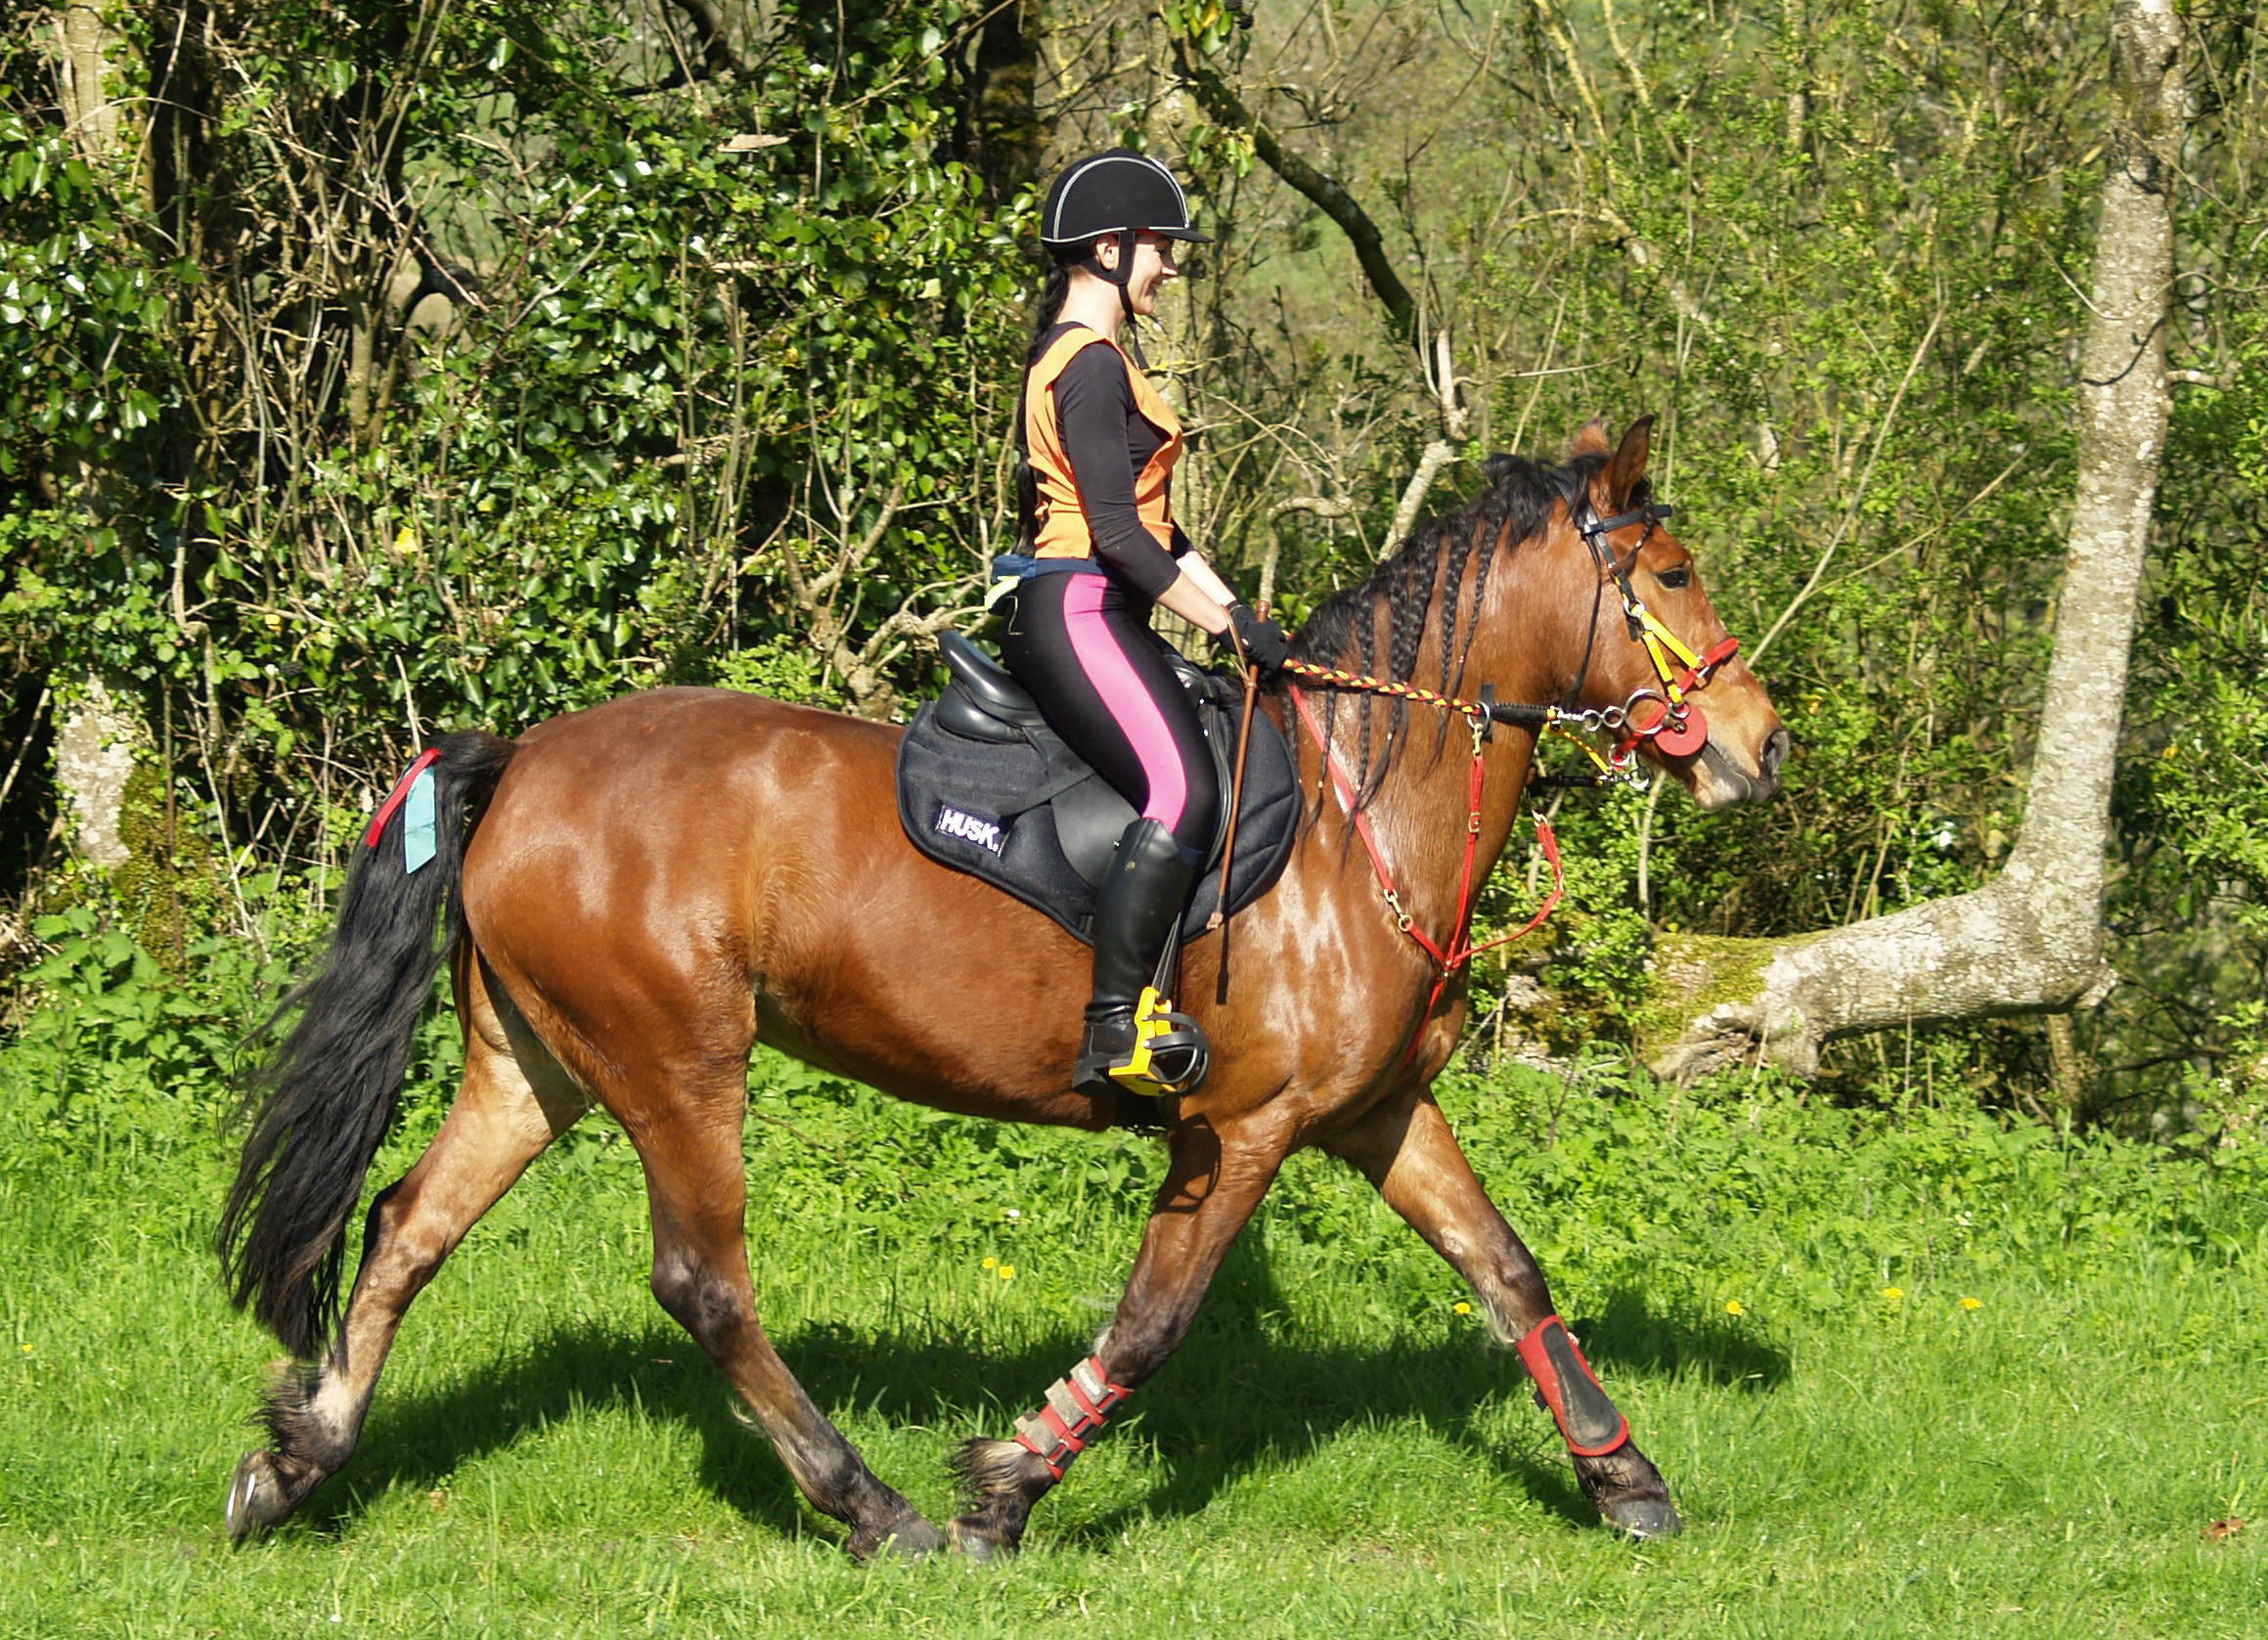 Joanna and Summer take on their first Endurance GB ride